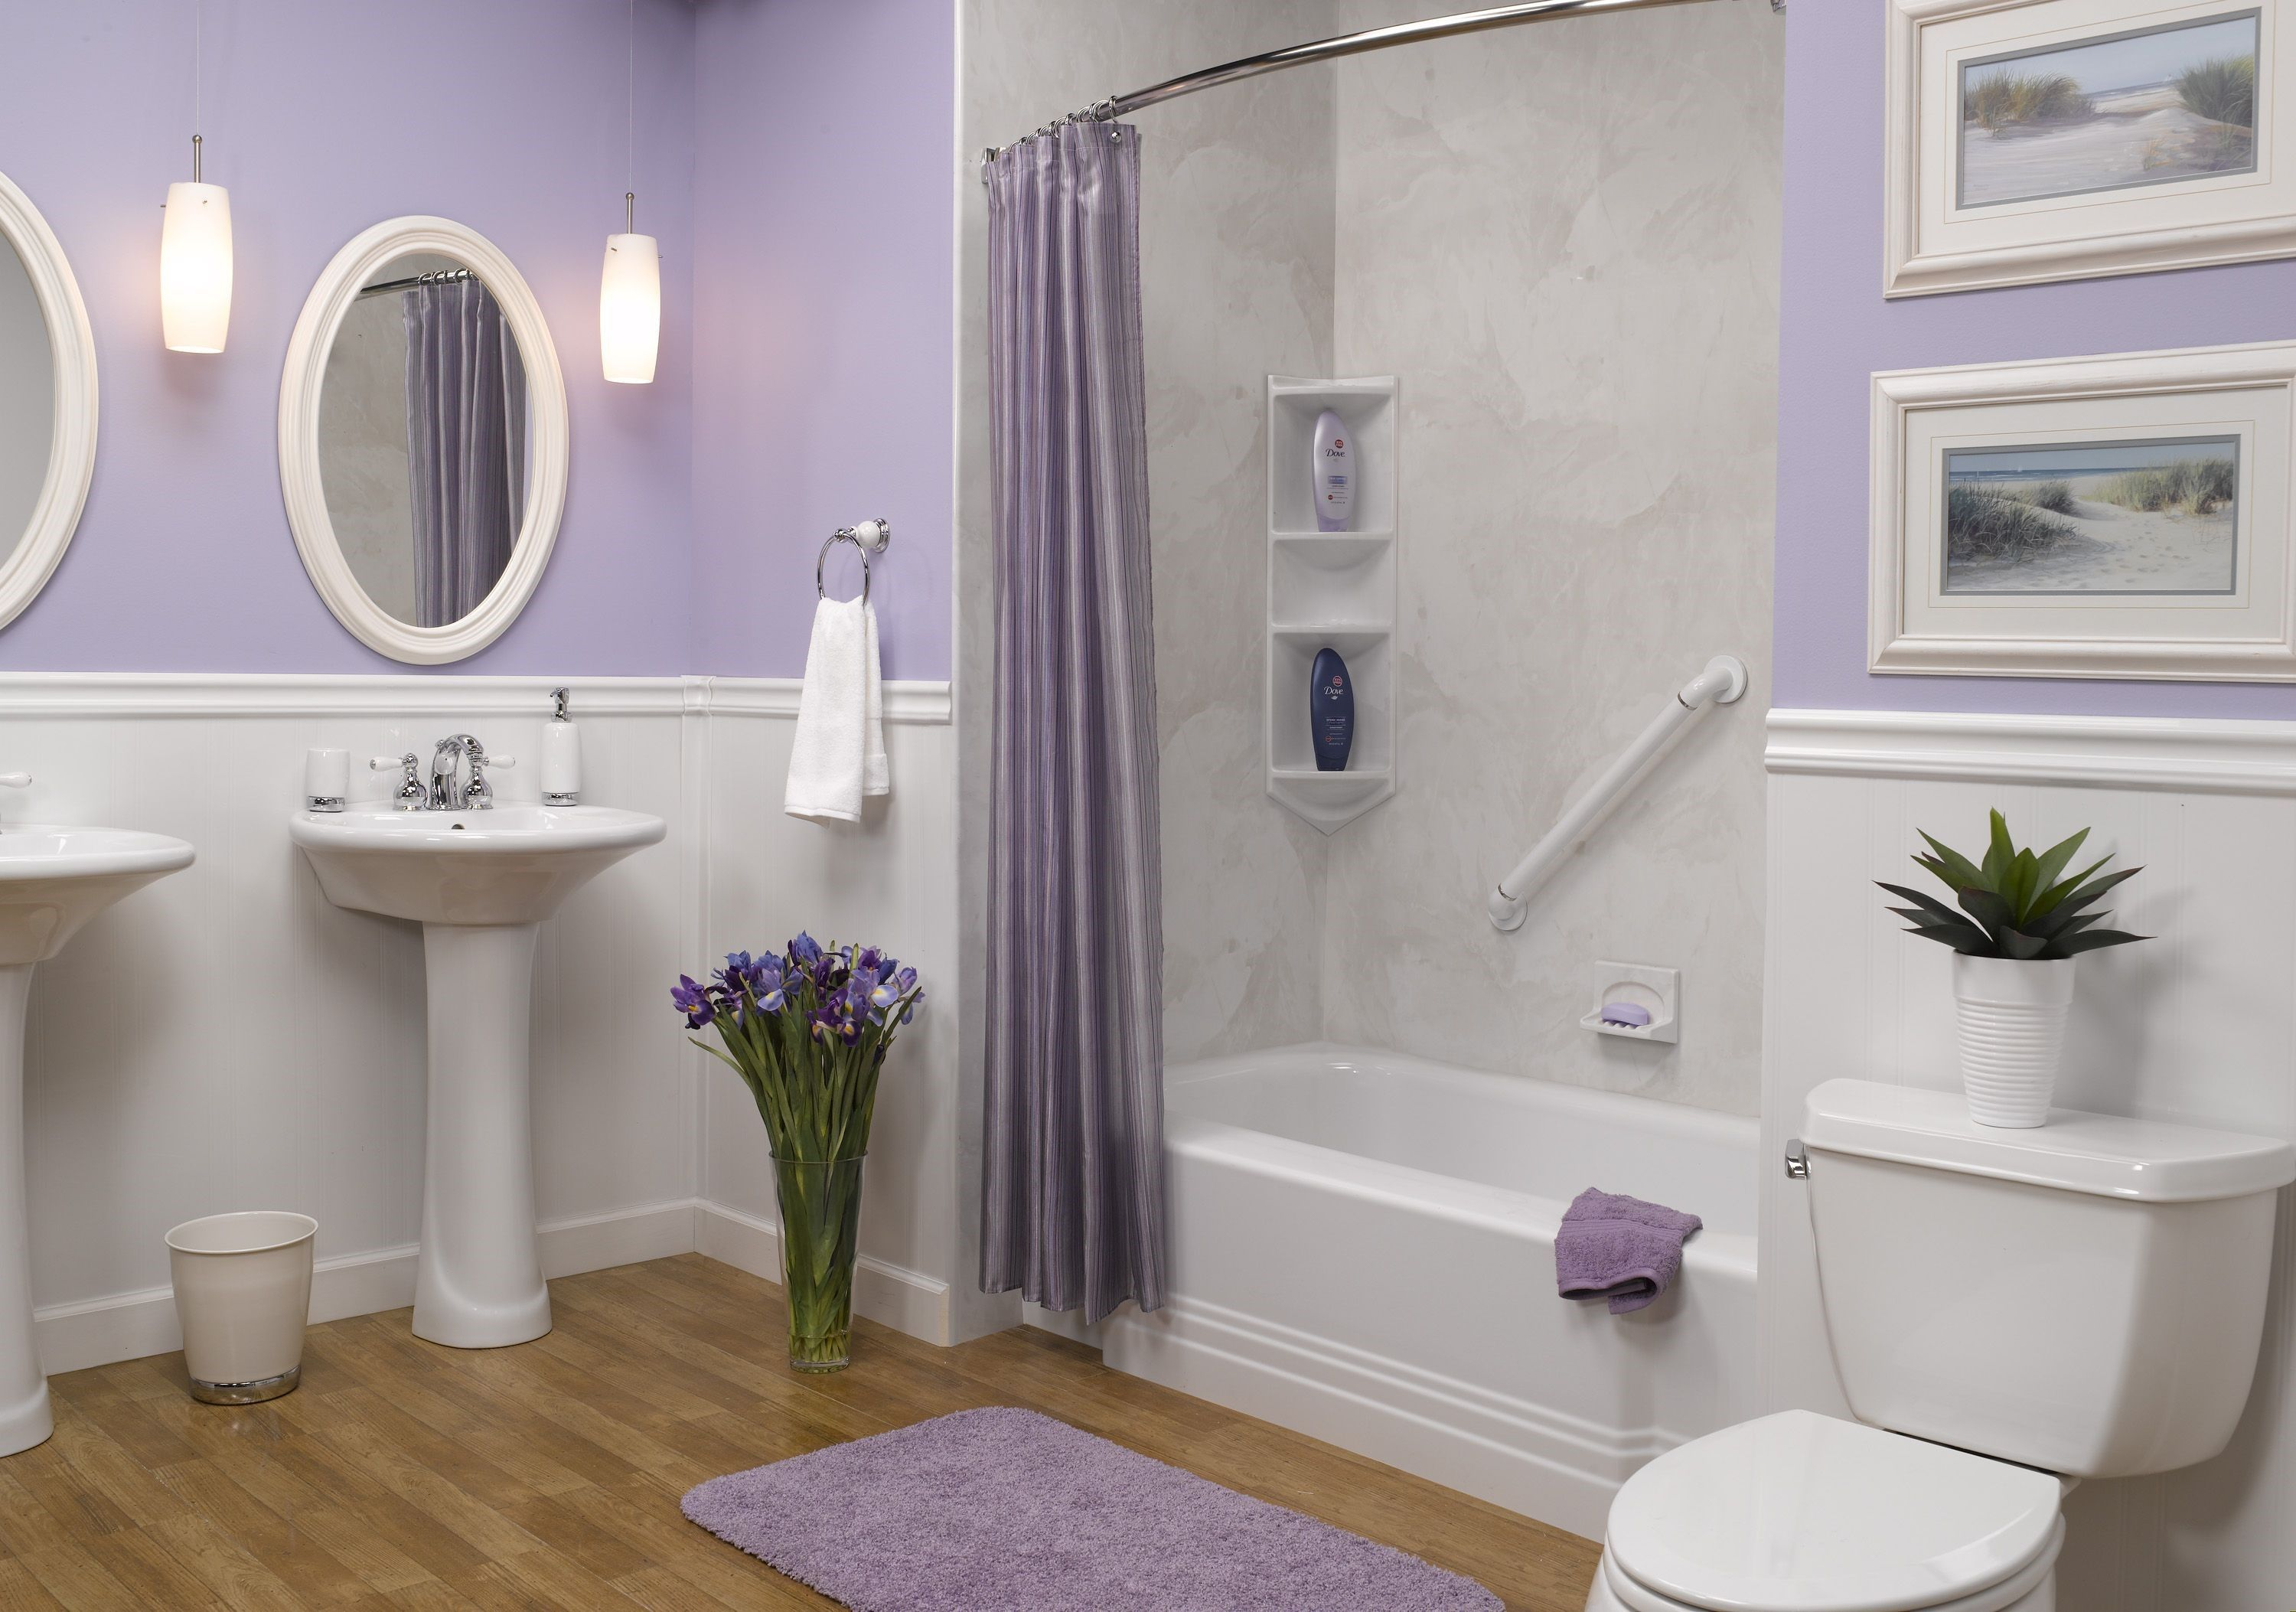 Blue Bathroom Decor In Lavender In 2020 With Images Lavender